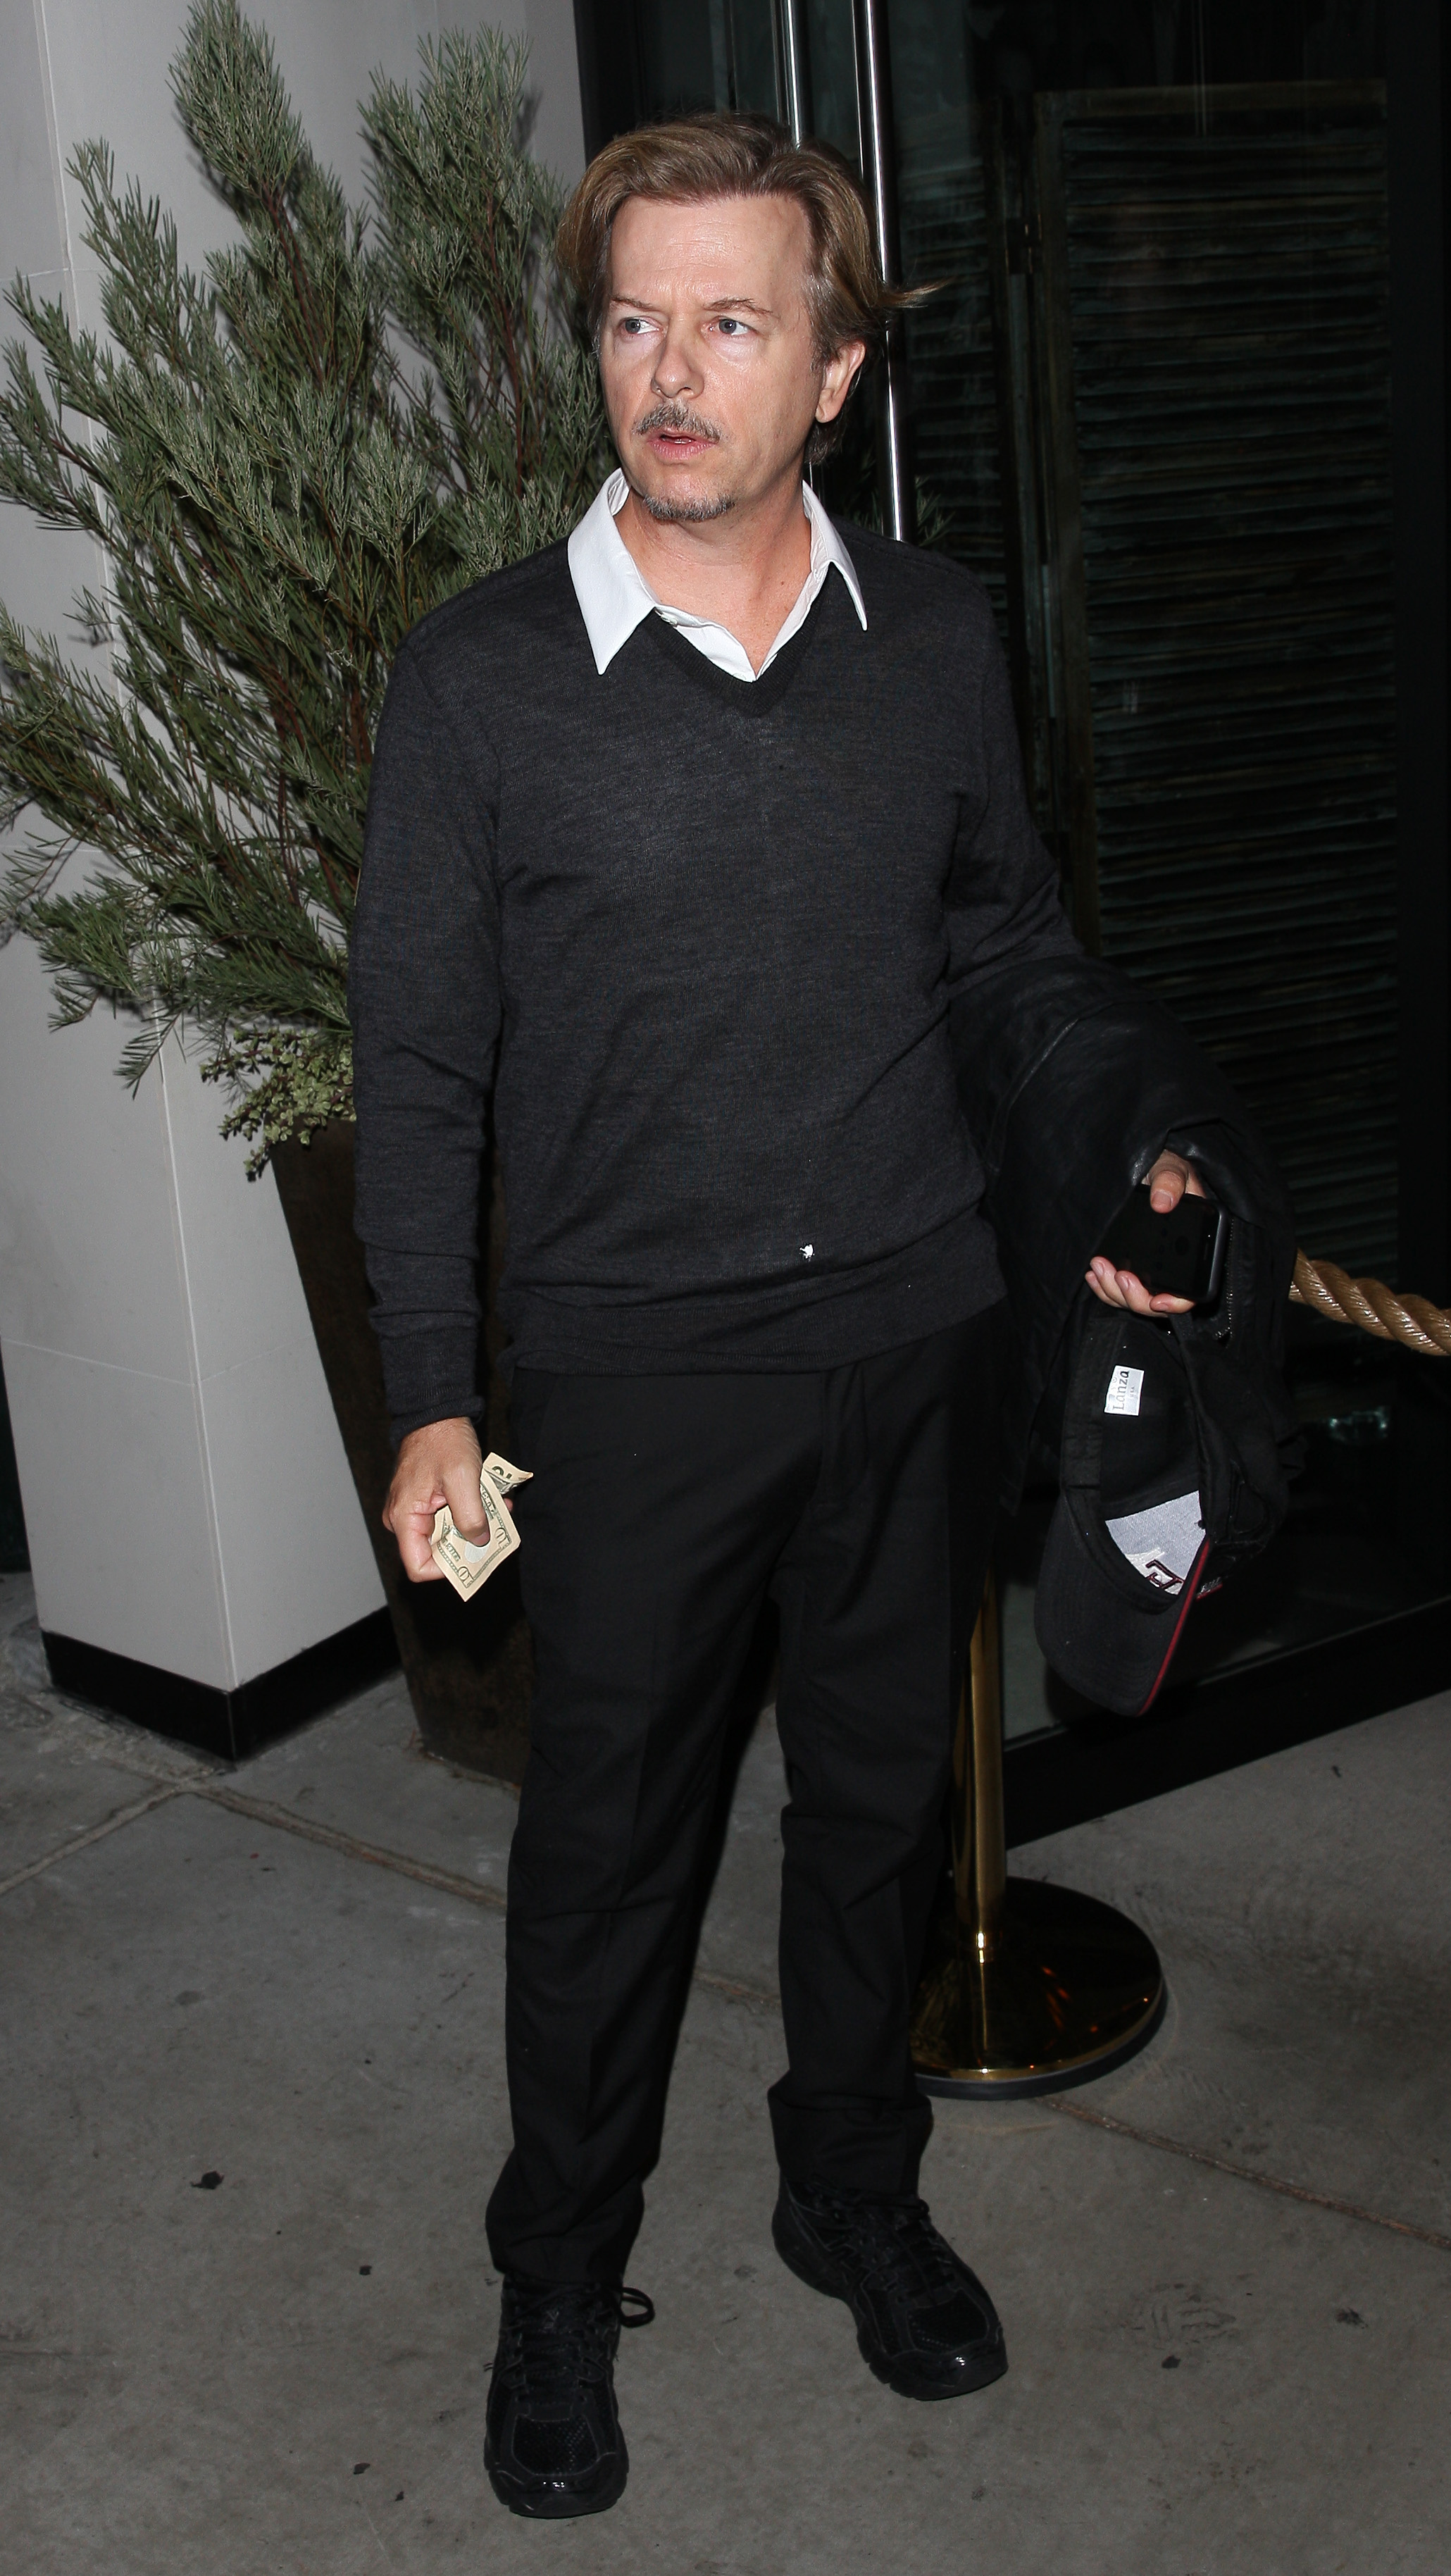 David Spade is seen arriving for dinner at Catch restaurant in West Hollywood (Photo credit: Splash News)